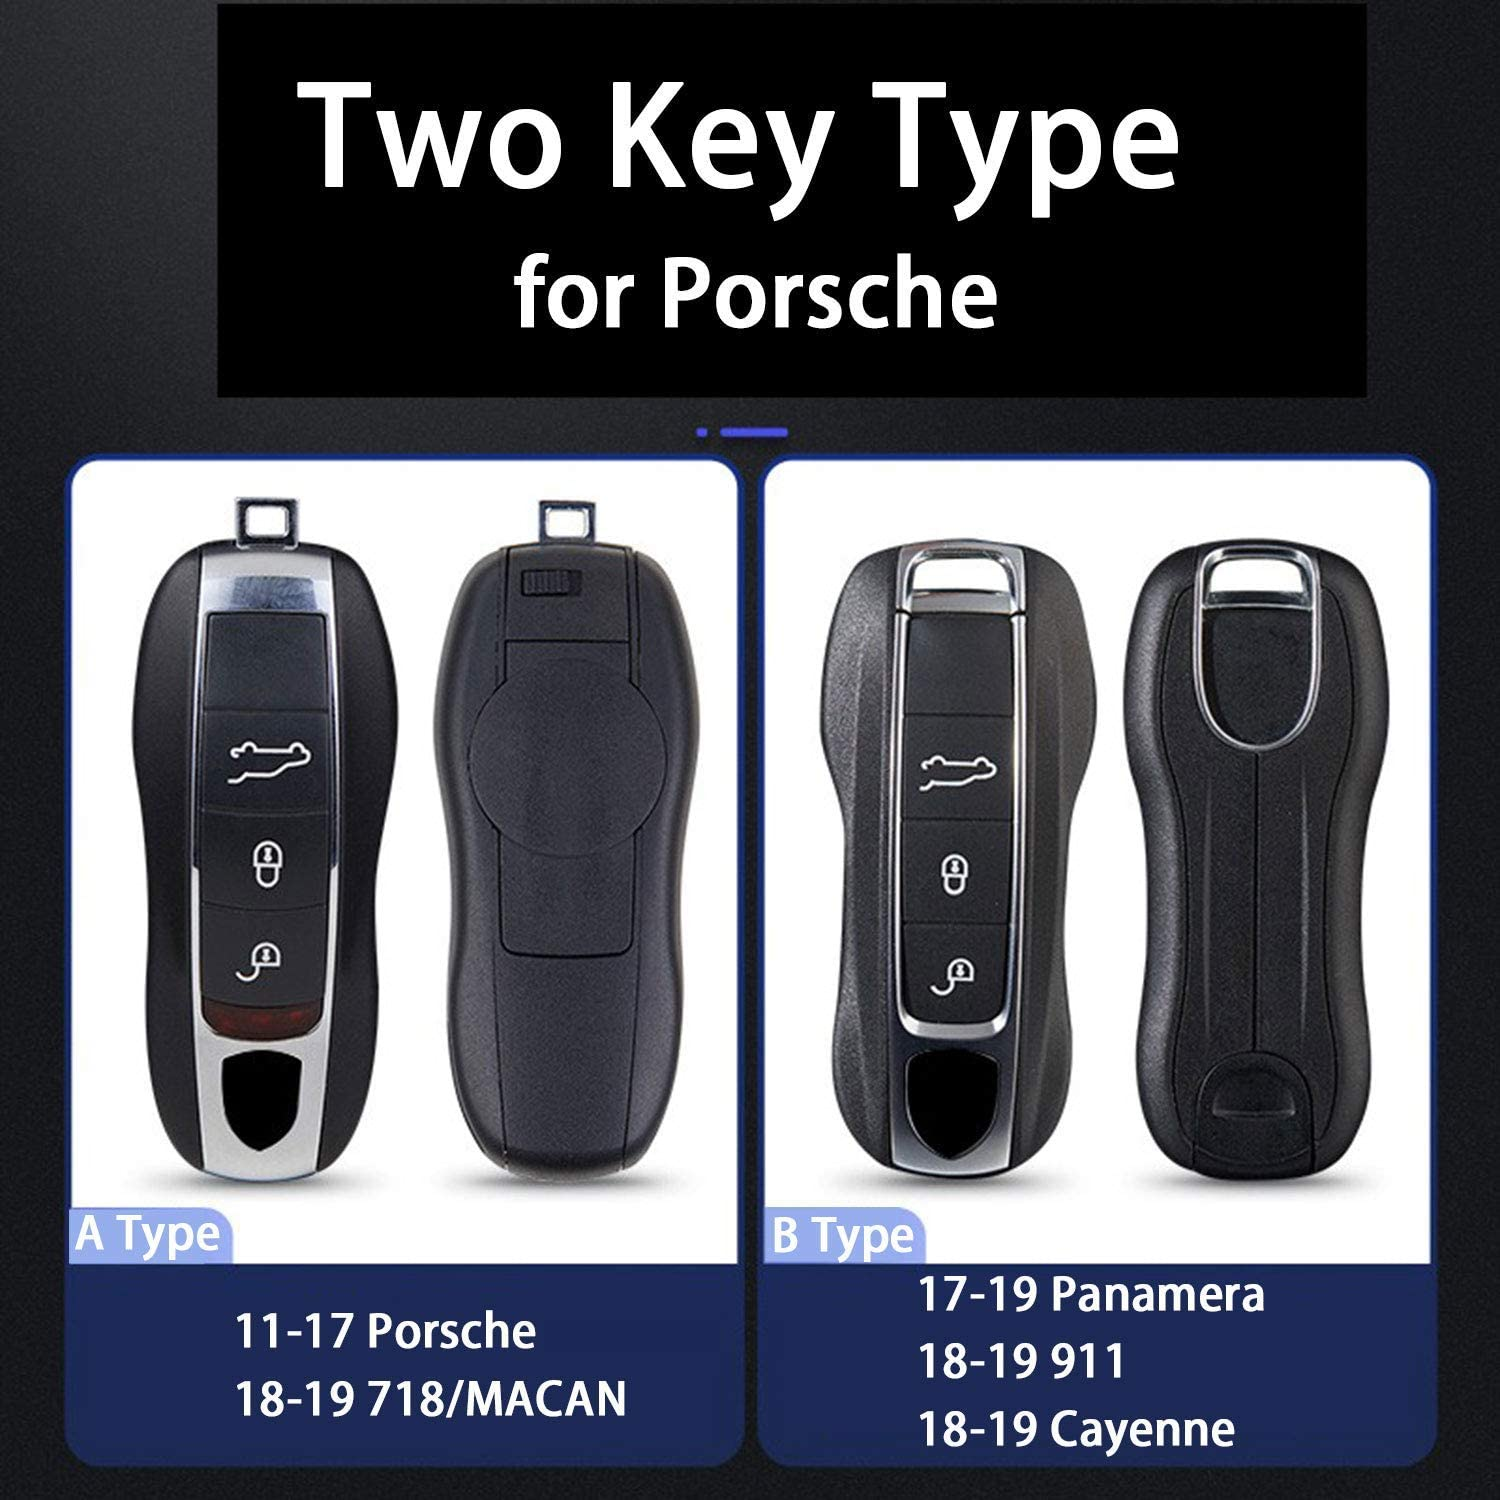 Kwaks Key Case for Porsche Pink Pig ABS Car Key Cover Fits for Porsche Boxster Turbo Cayenne Panamera Macan Cayman 911 Key Holder Car Key Cover AType Orangepink